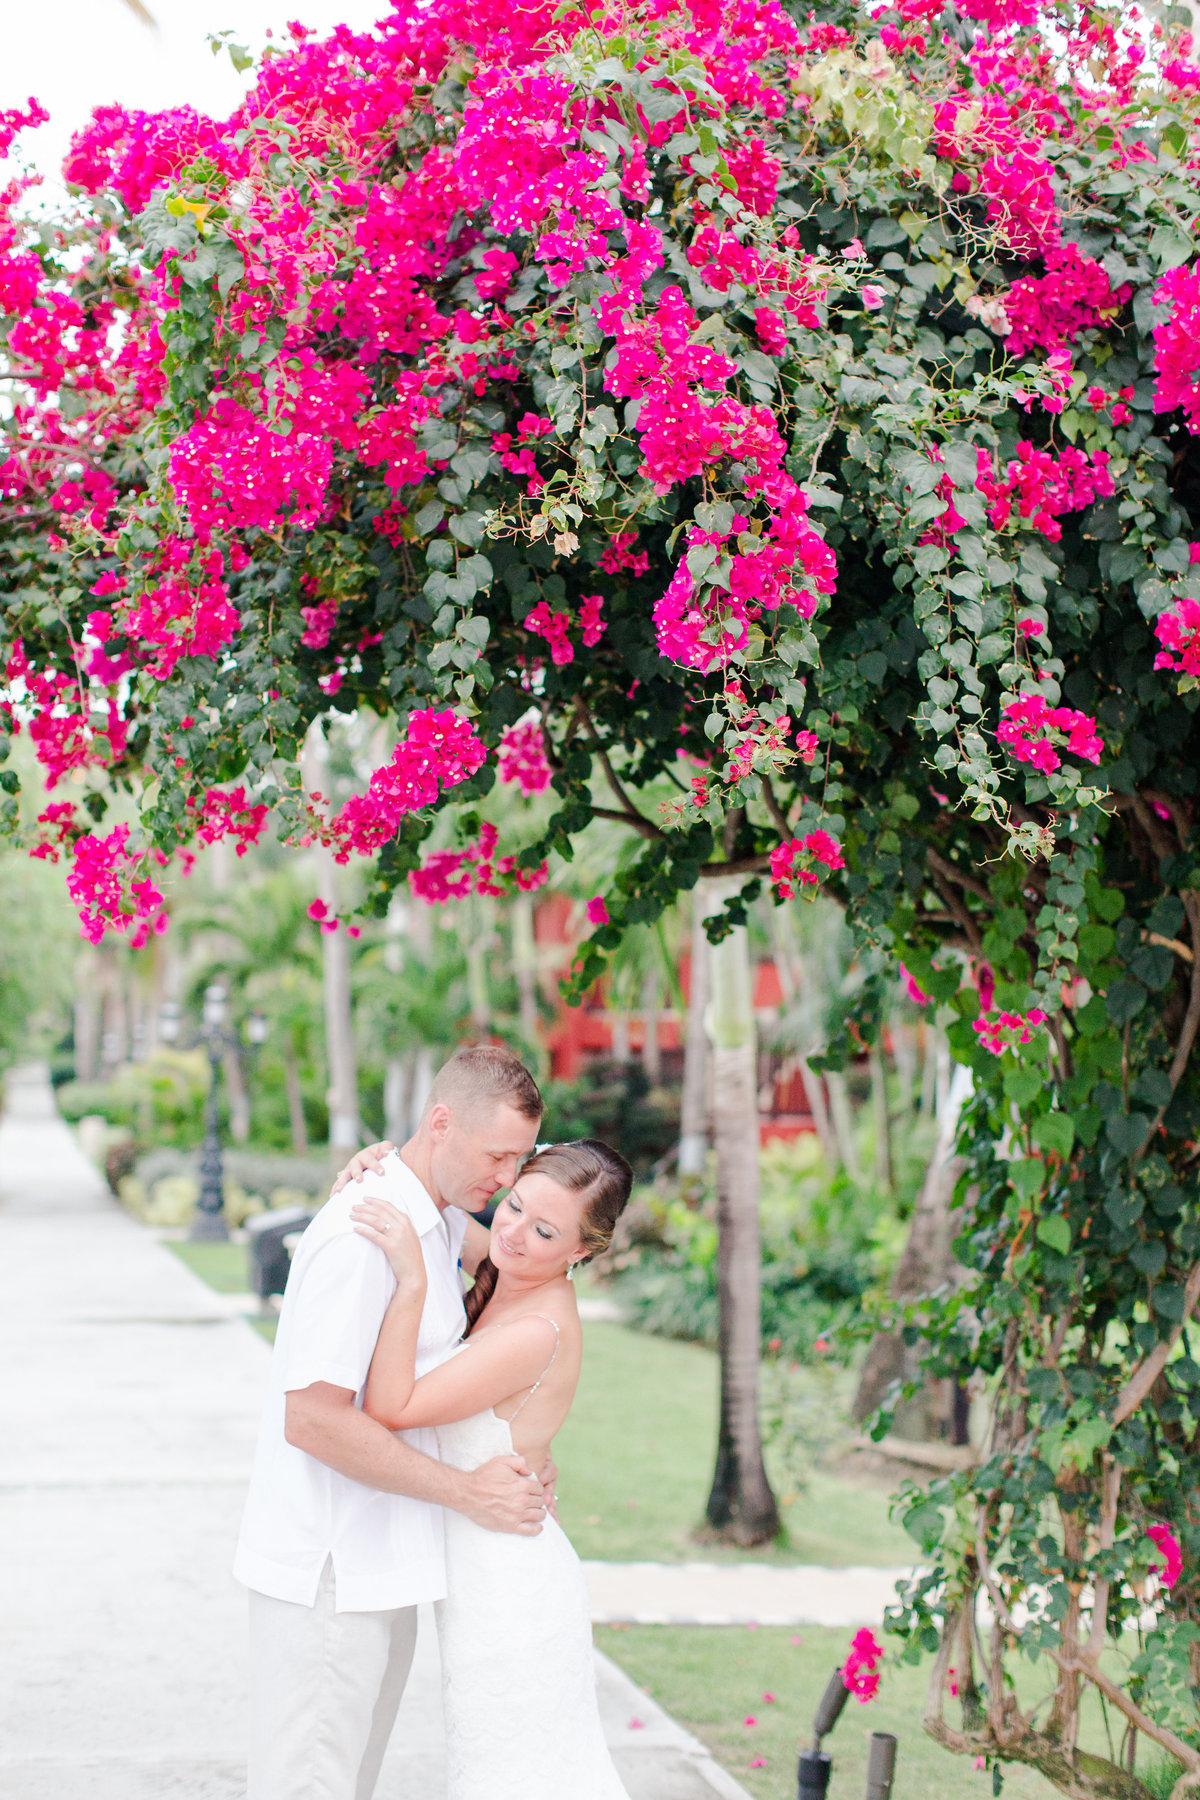 antigua-destination-wedding-fannin-bride-groom-portraits-bethanne-arthur-photography-photos-68